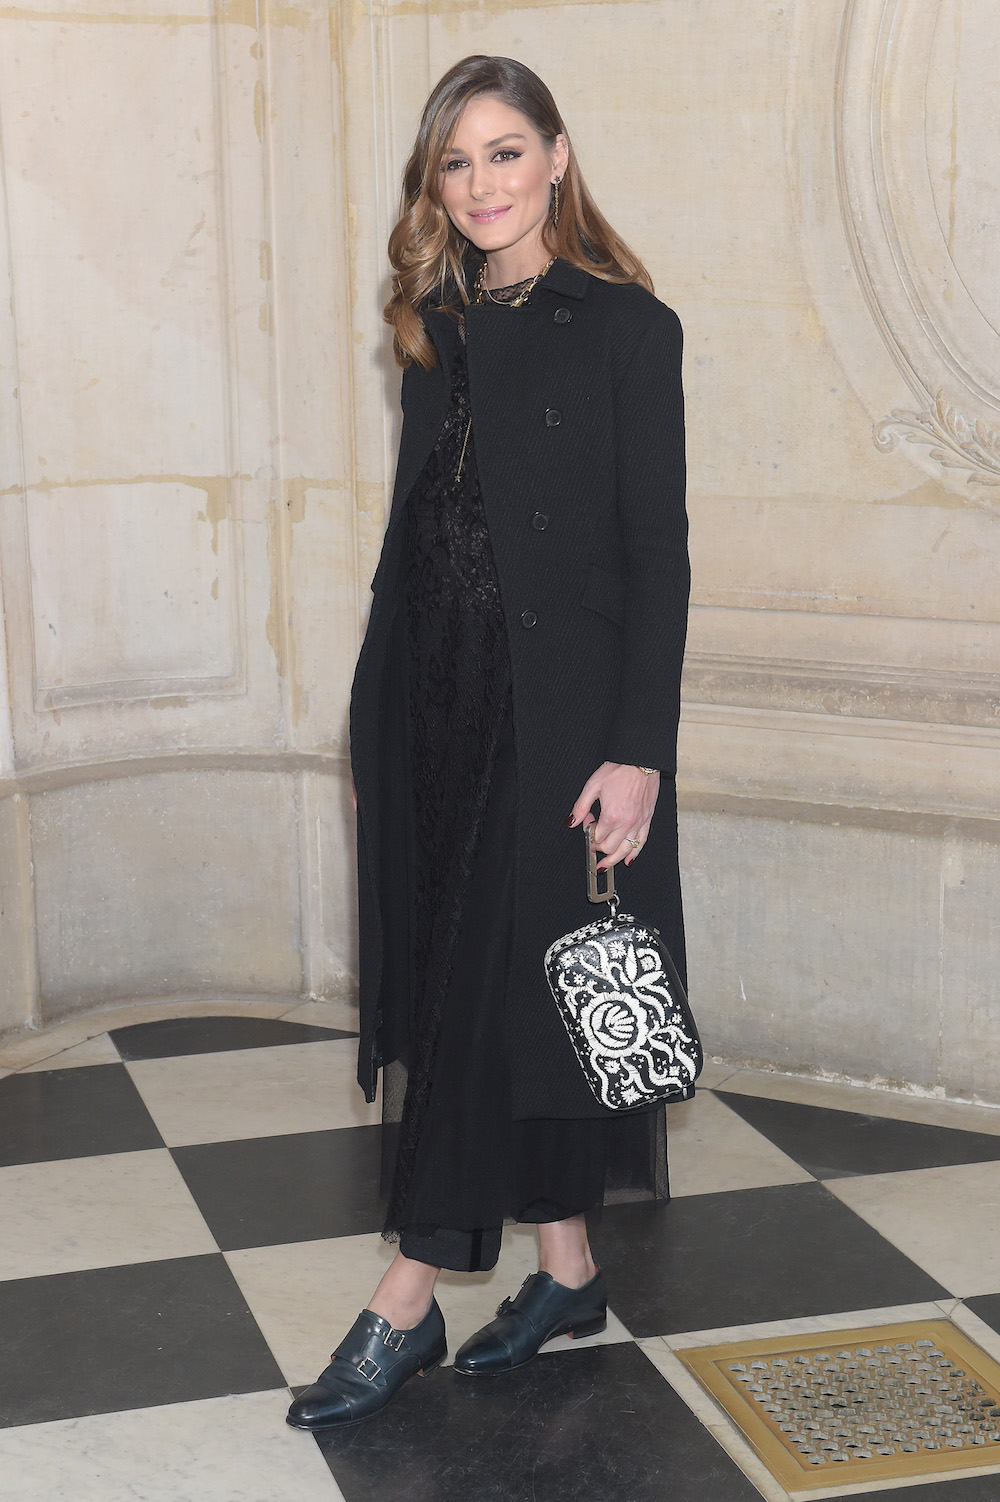 Olivia Palermo in Dior Fall 2019 black wool coat, a Dior Fall 2019 black lace dress, a Diorquake black printed leather clutch and Dior shoes.